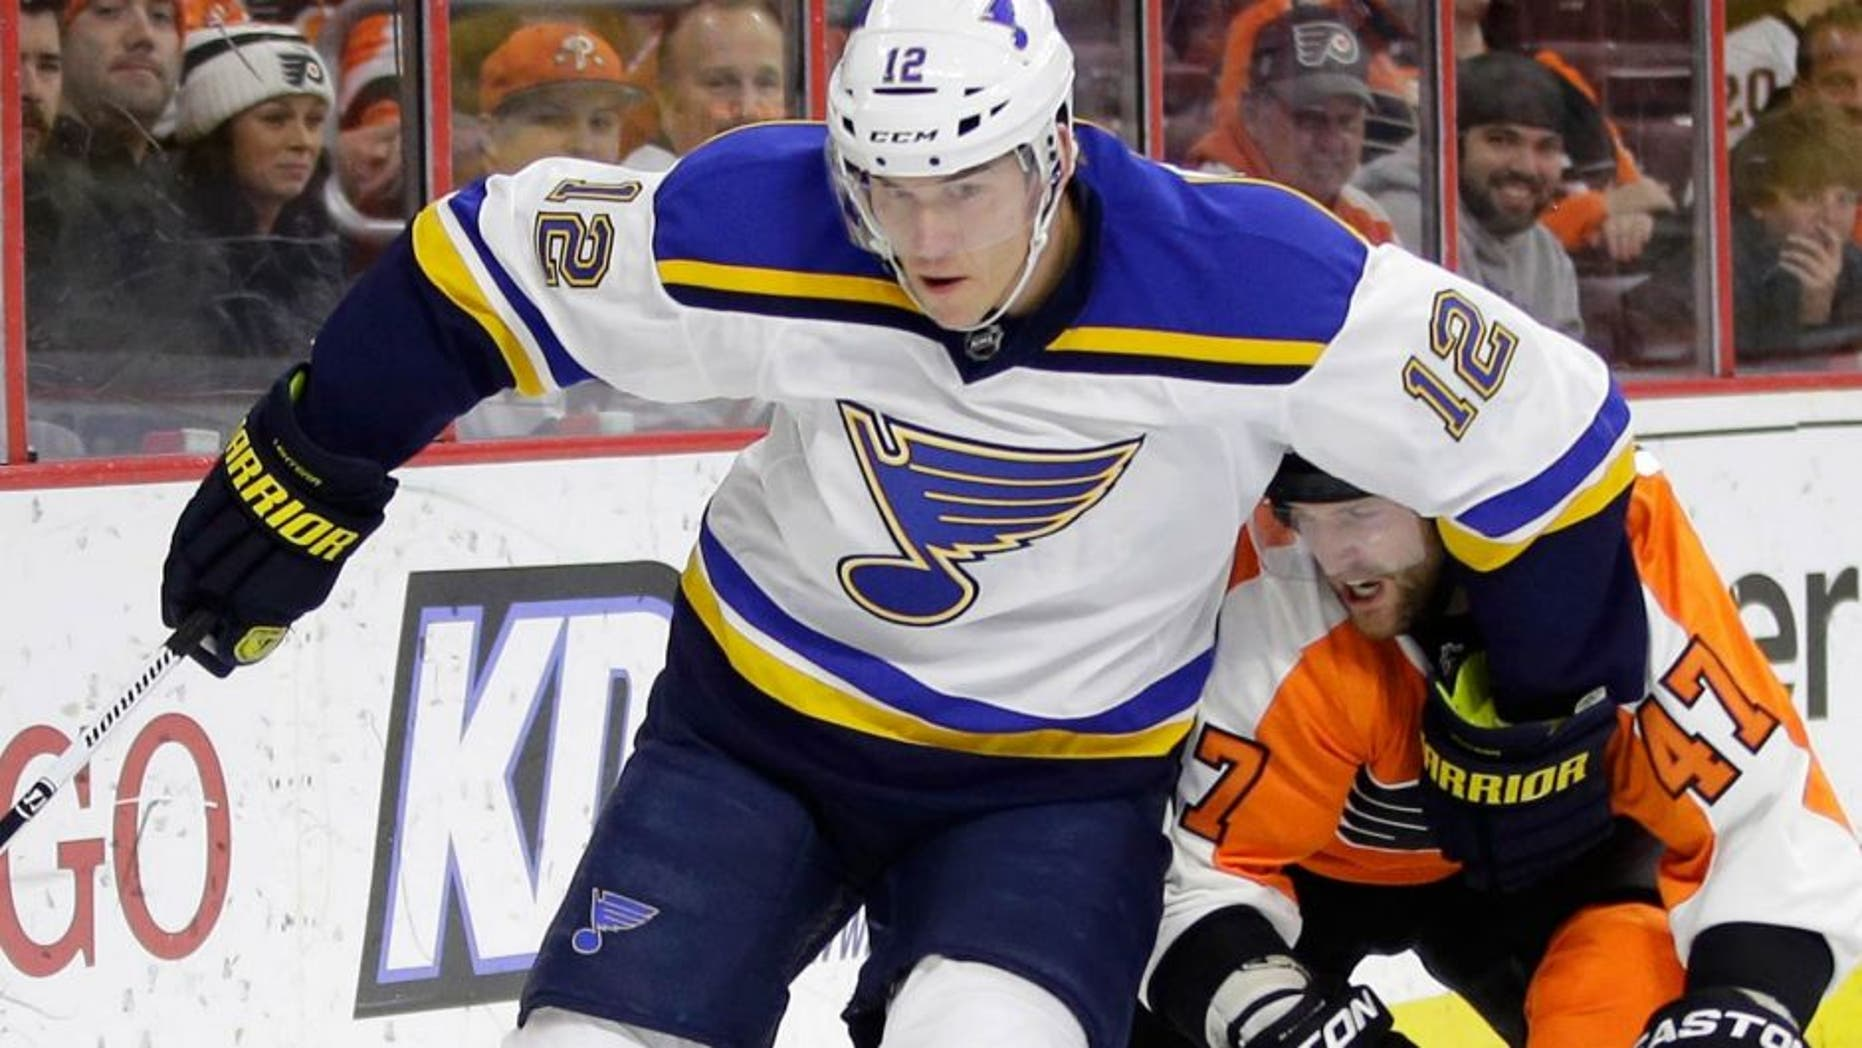 St. Louis Blues' Jori Lehtera (12), of Finland, keeps Philadelphia Flyers' Andrew MacDonald (47) away from the puck during the first period of an NHL hockey game, Thursday, March 5, 2015, in Philadelphia. (AP Photo/Matt Slocum)